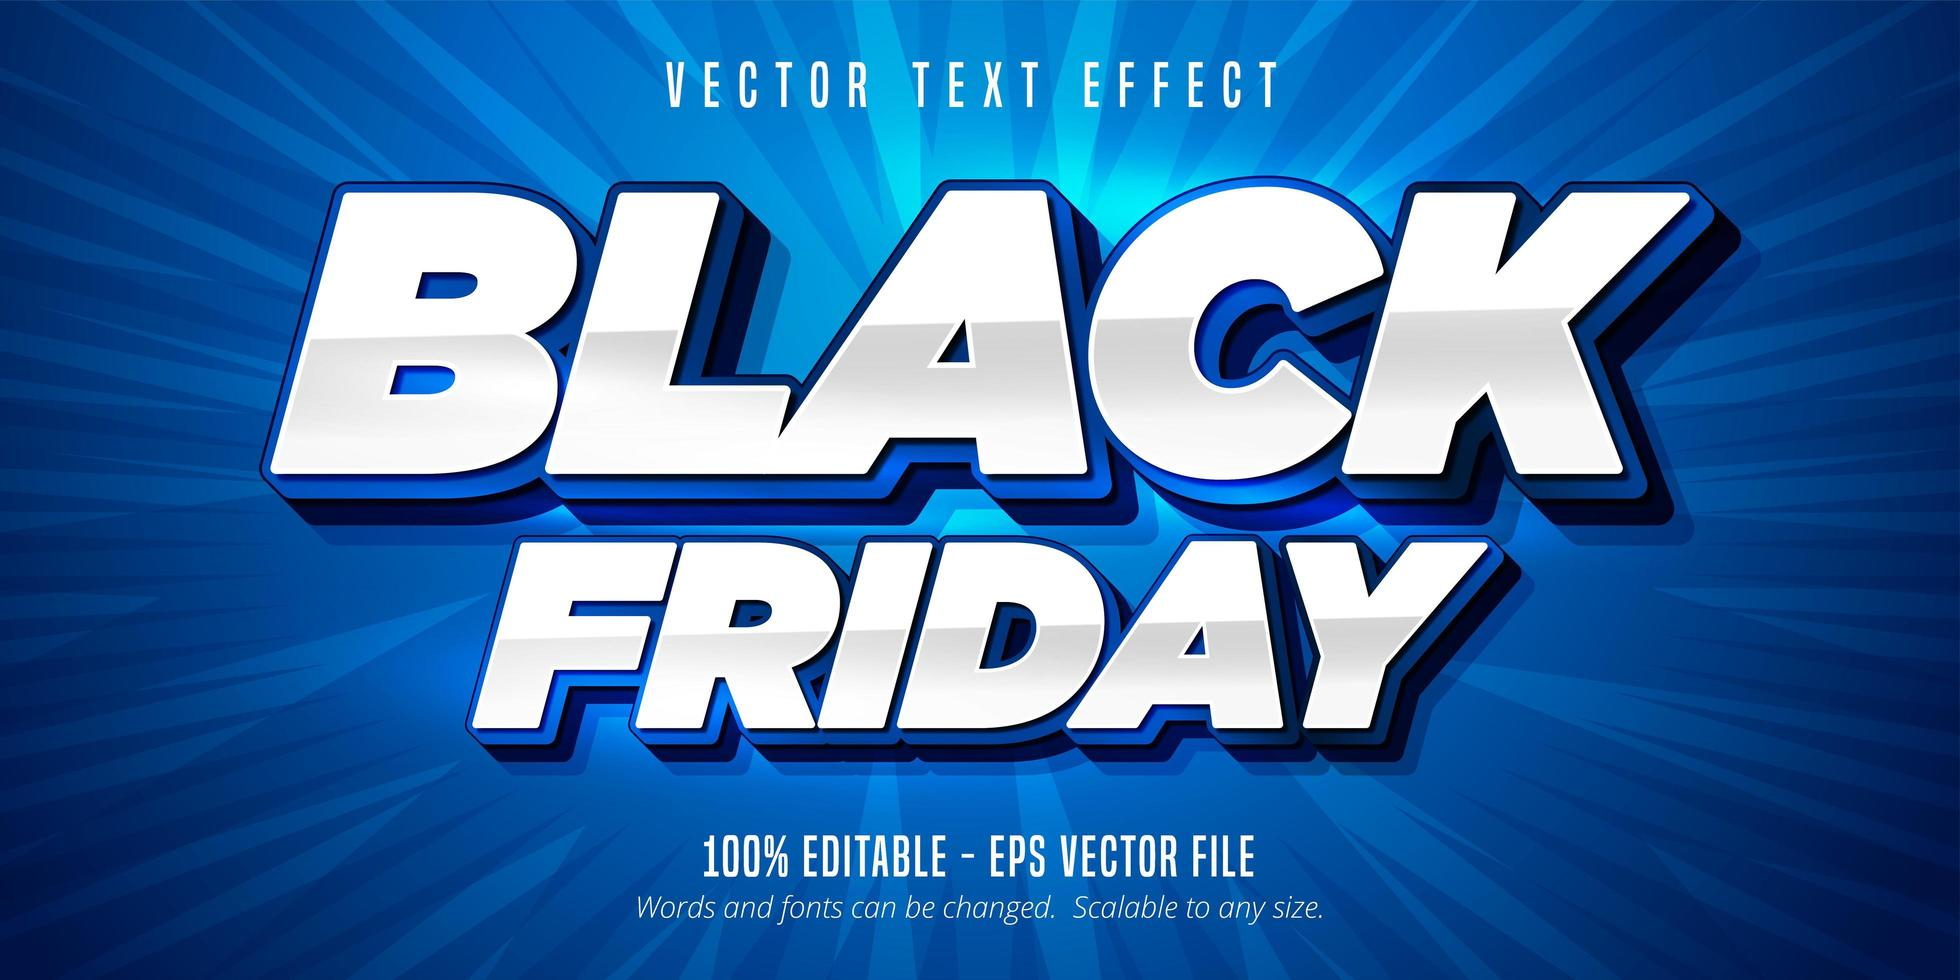 White and Blue Black friday text, editable text effect vector